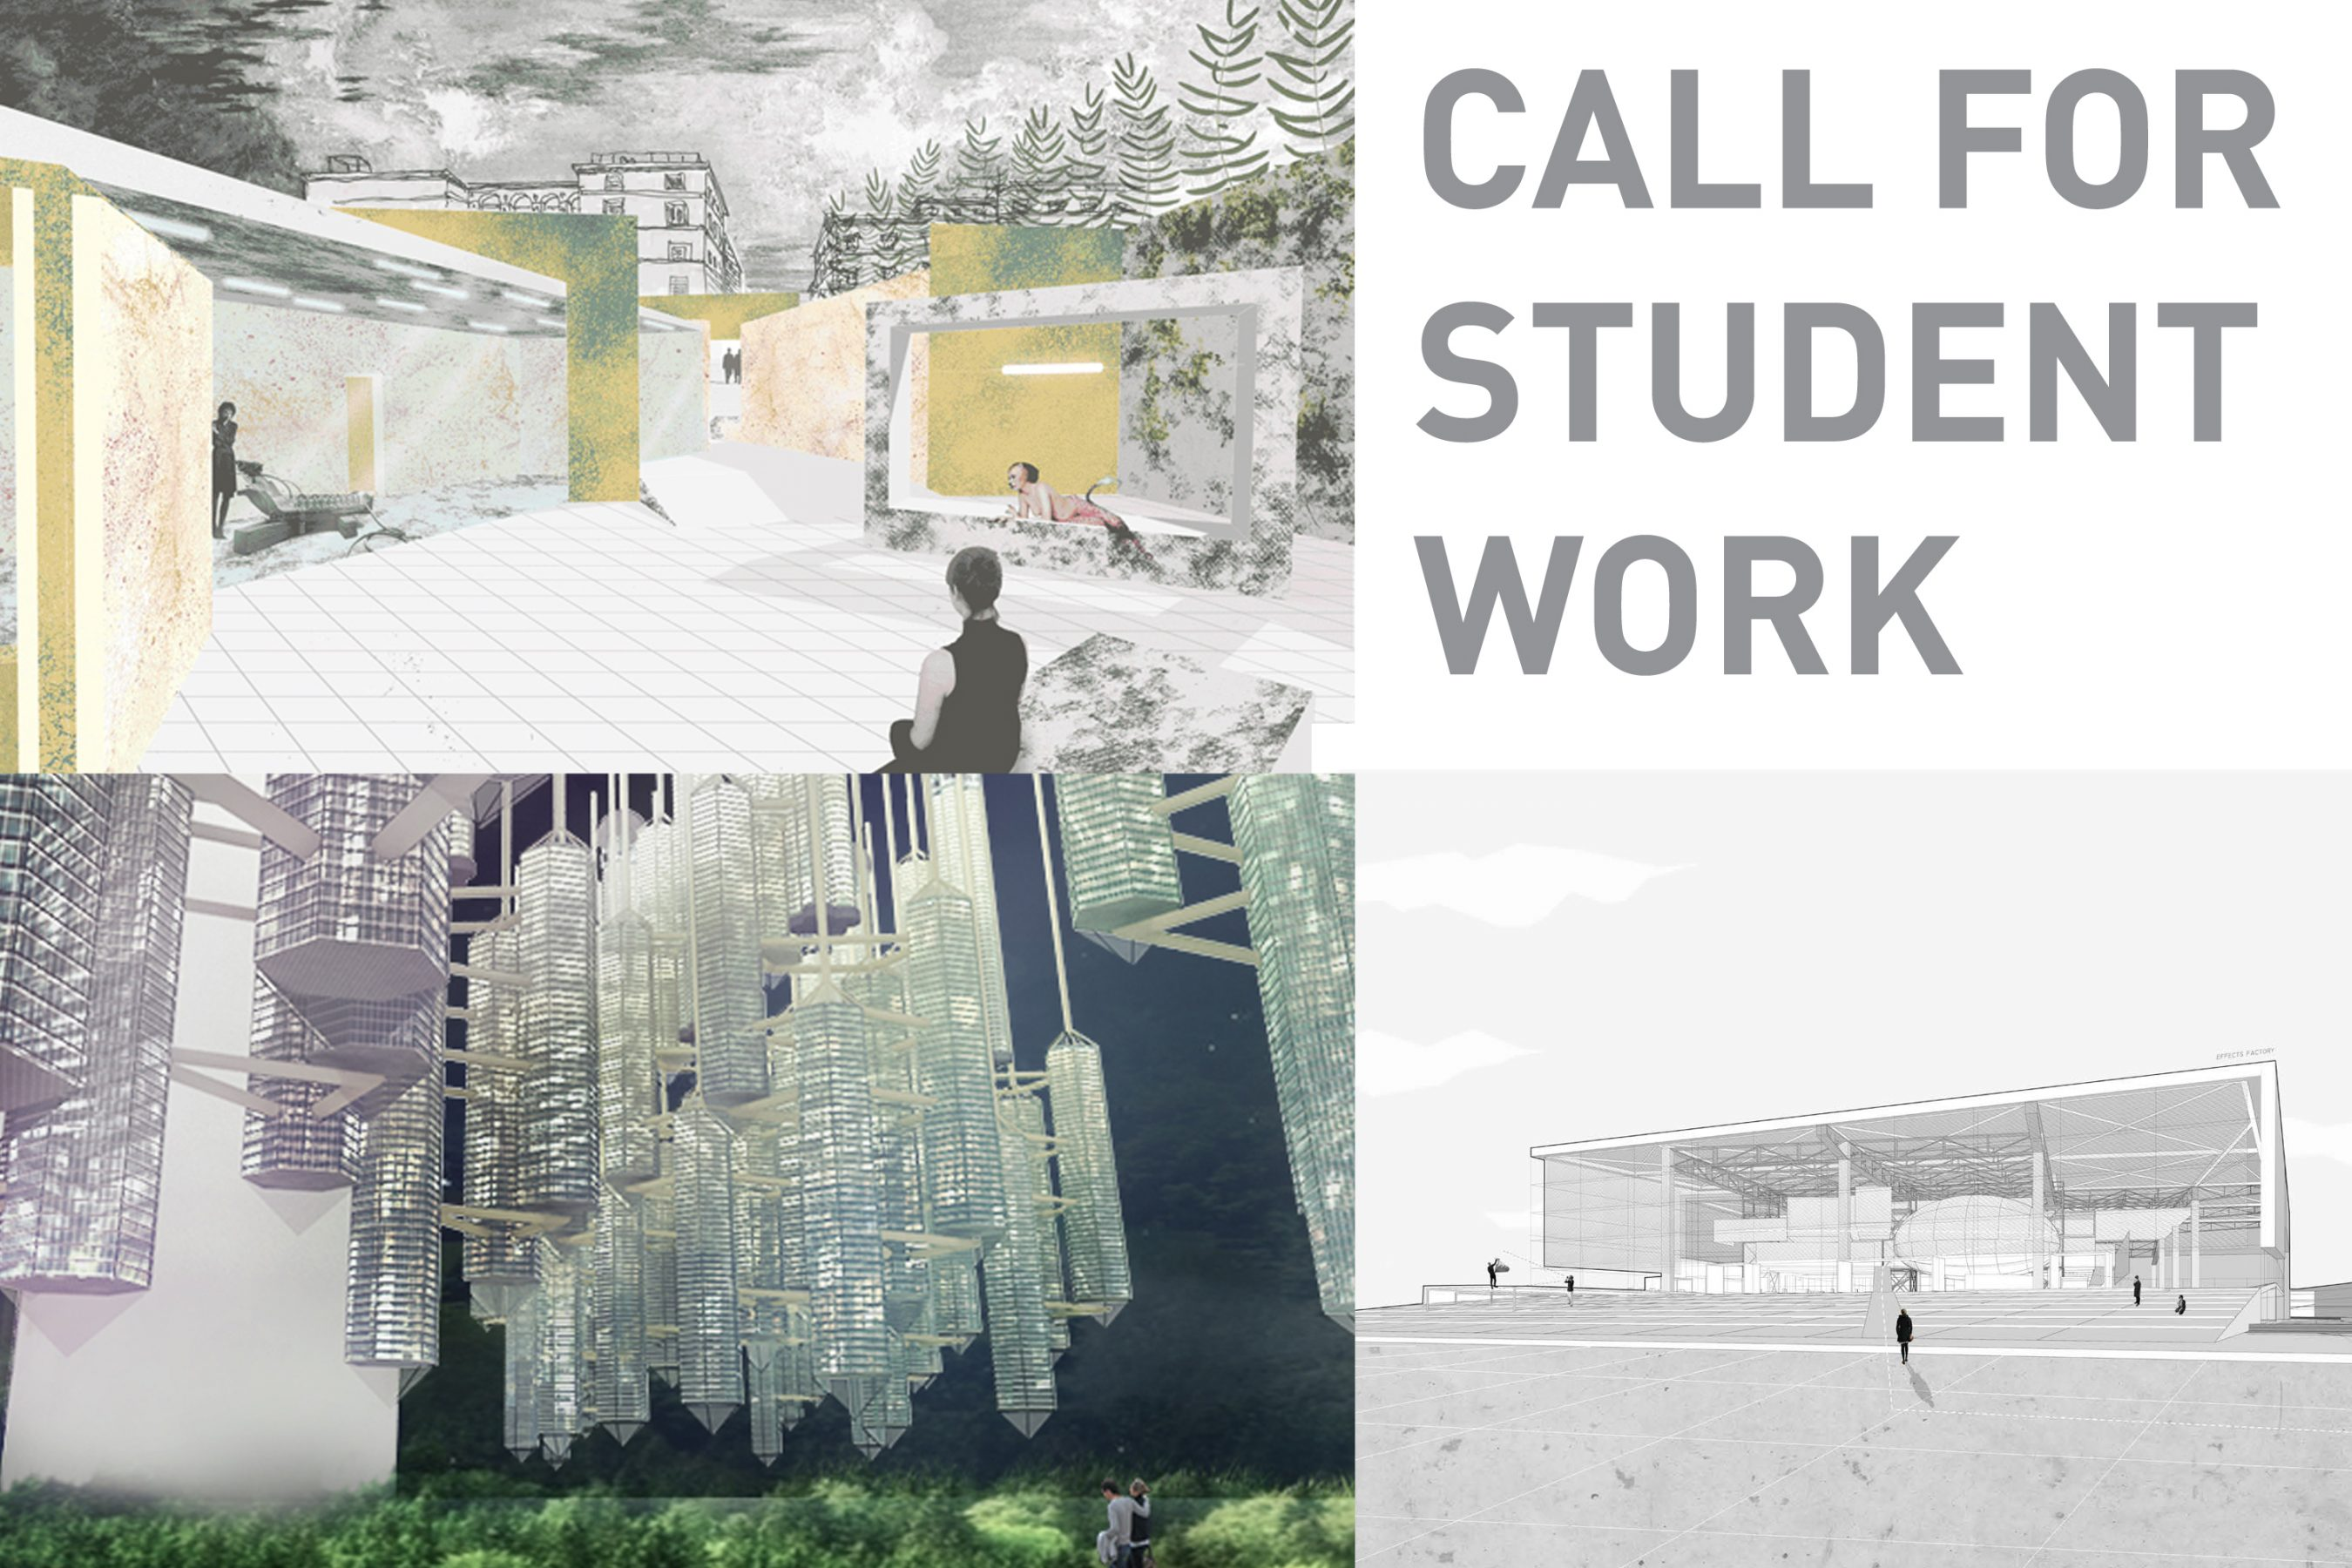 CALL FOR STUDENT WORK: SPRING 2016